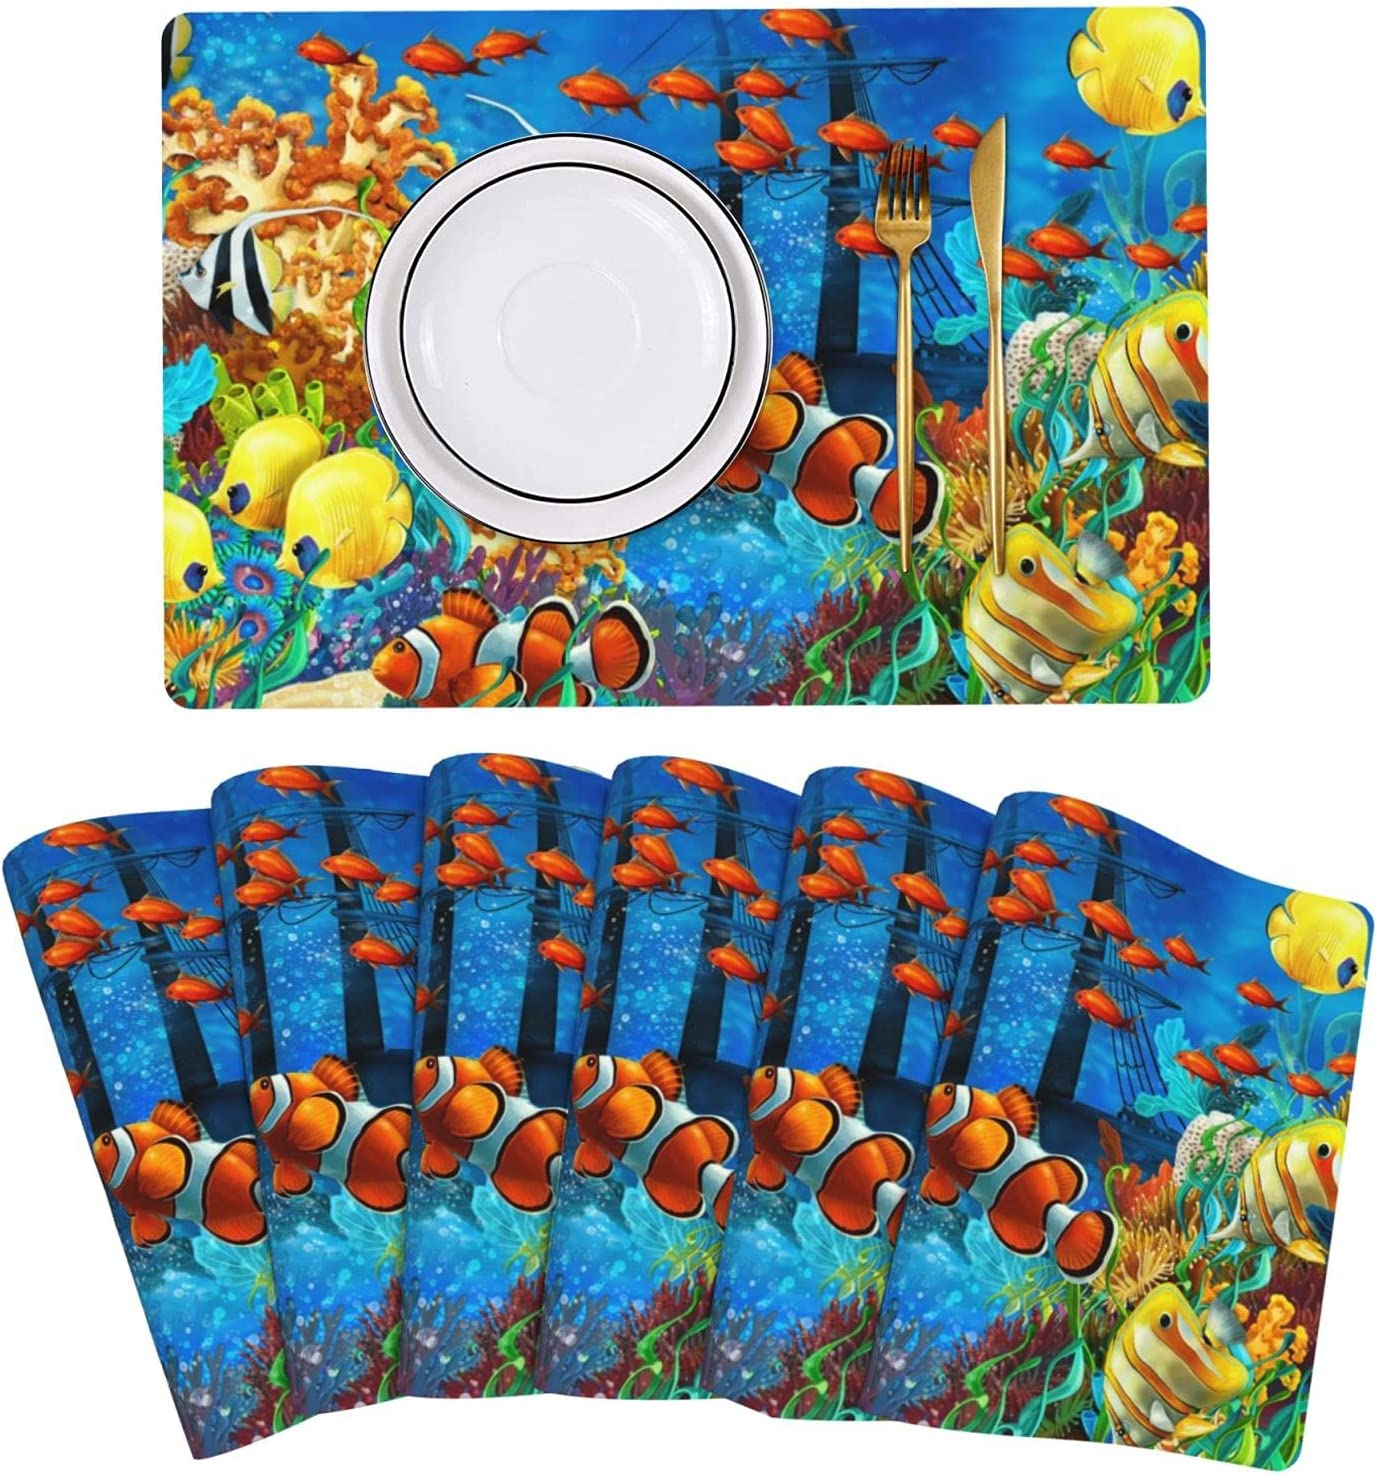 Ocean Tropical Fish Coral Undersea Complete Free Shipping Rare Leather T World Placemat